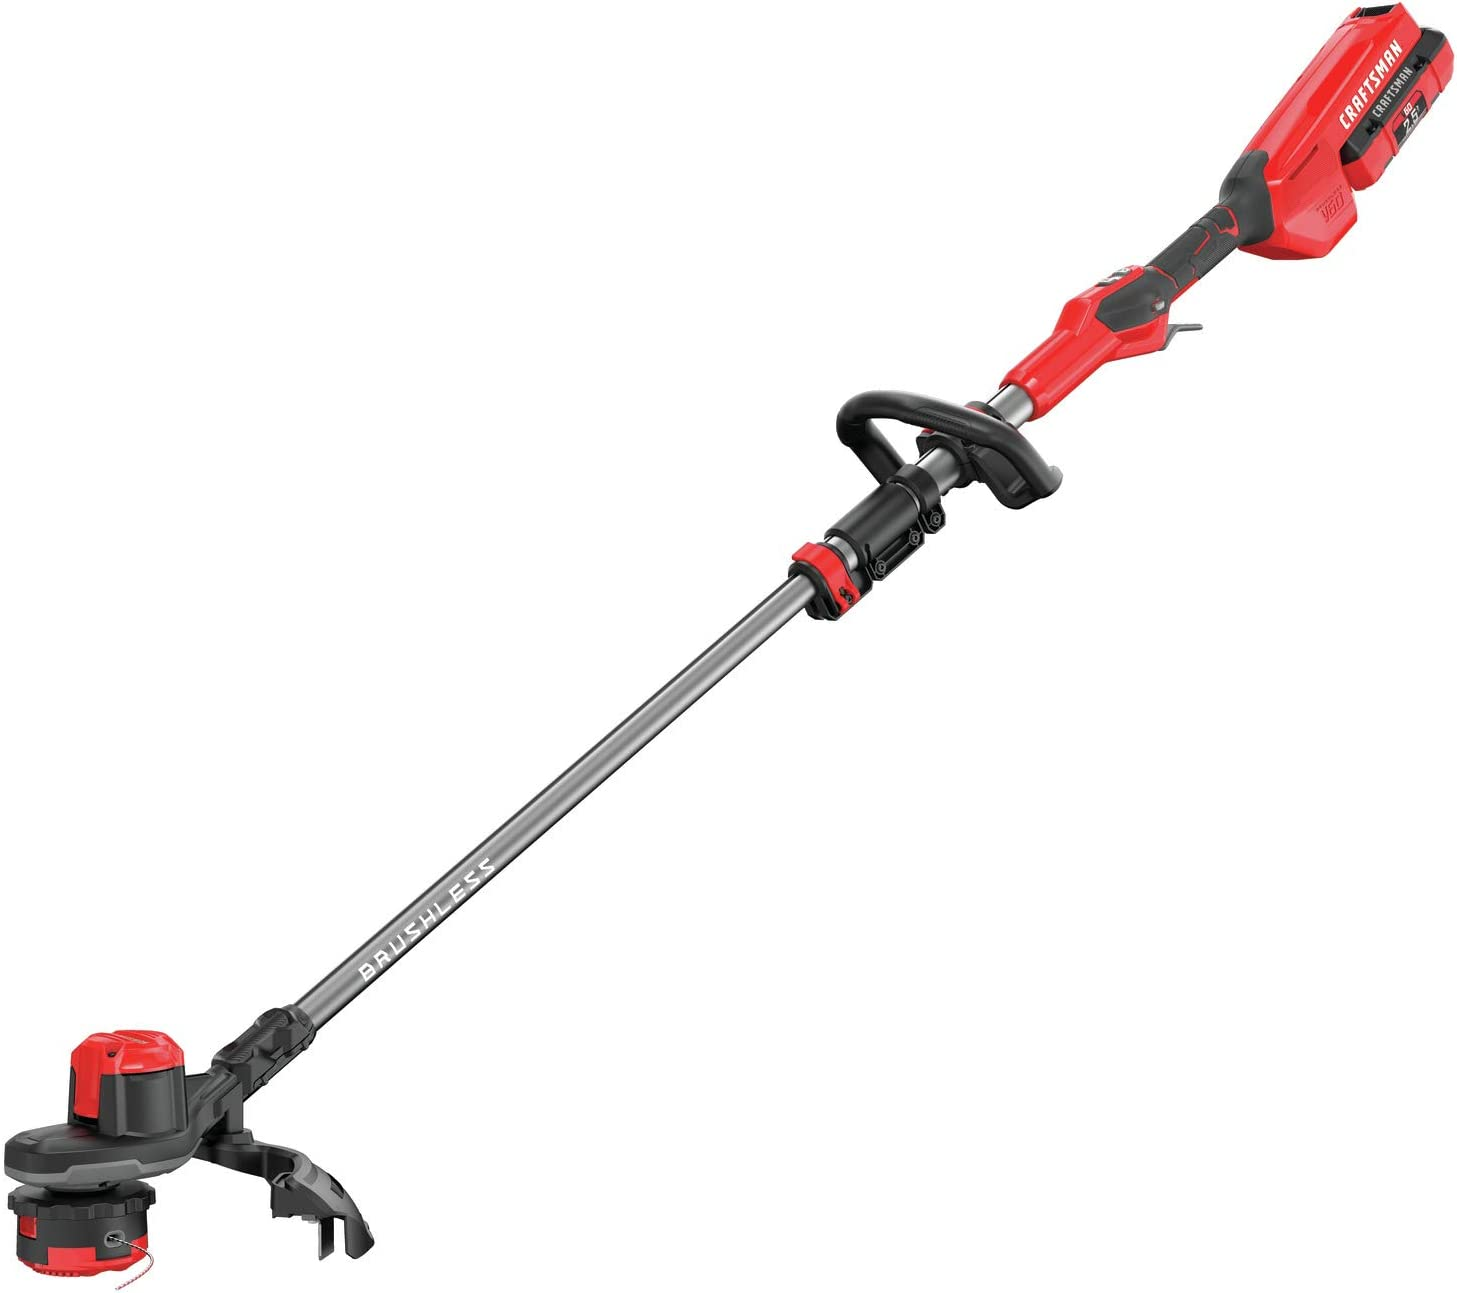 Craftsman V60 Weedwhacker String Trimmer